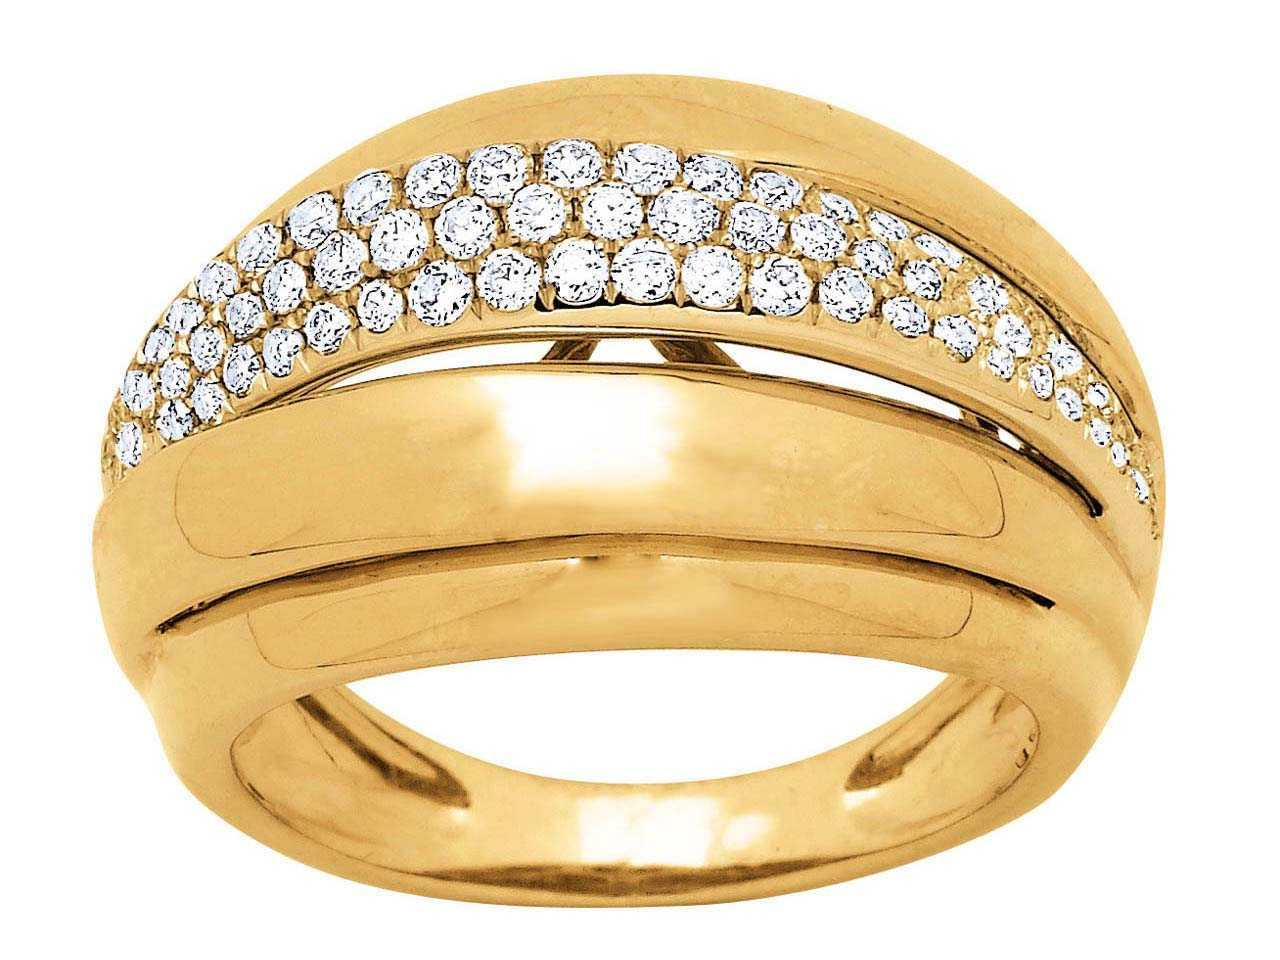 Bague lady Or jaune, diamants 0,58 ct, doigt 58